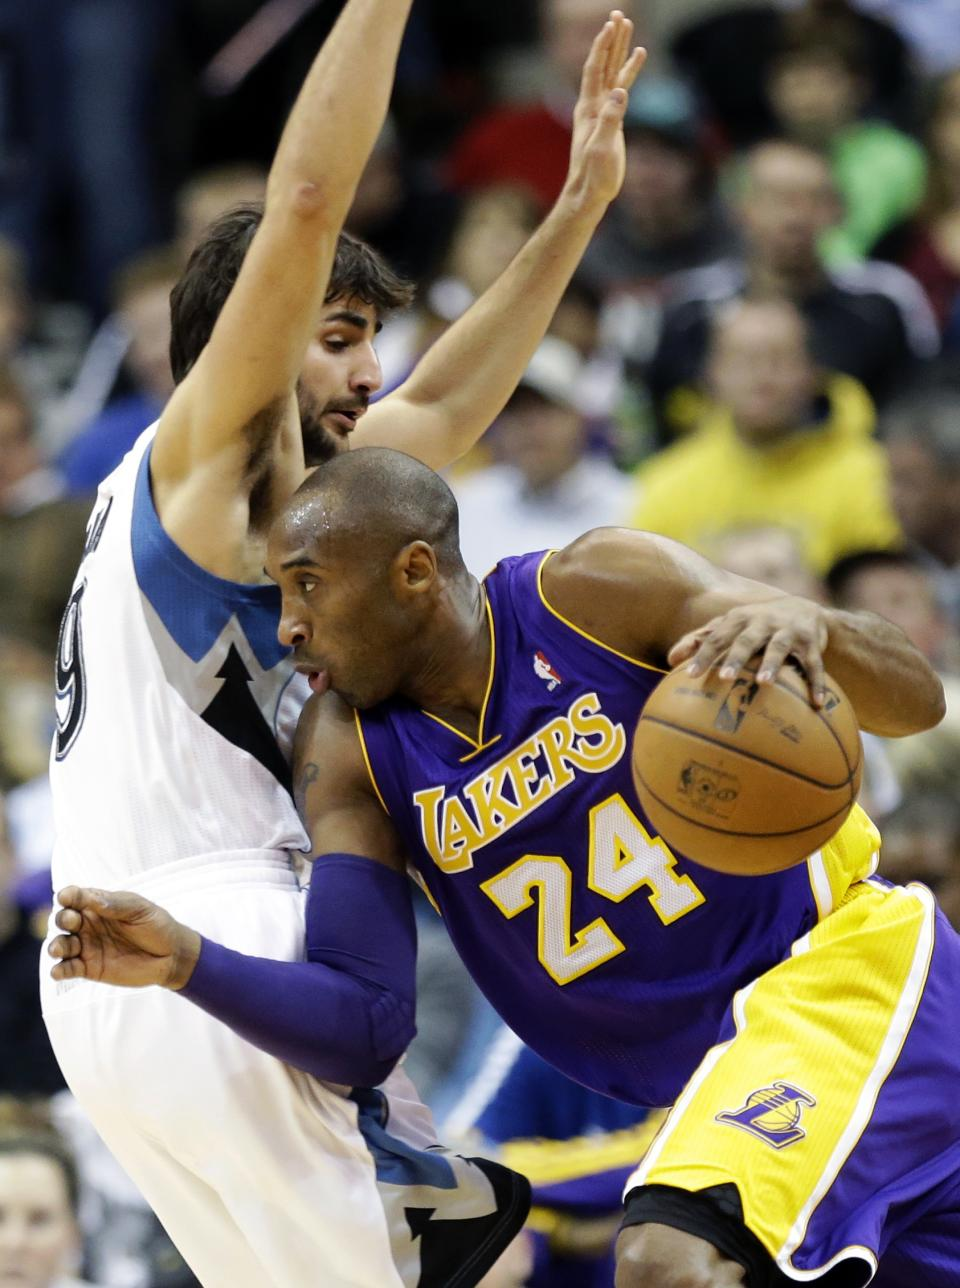 Los Angeles Lakers' Kobe Bryant, right, drives around Minnesota Timberwolves' Ricky Rubio, of Spain, in the first quarter of an NBA basketball game, Friday, Feb. 1, 2013, in Minneapolis. (AP Photo/Jim Mone)